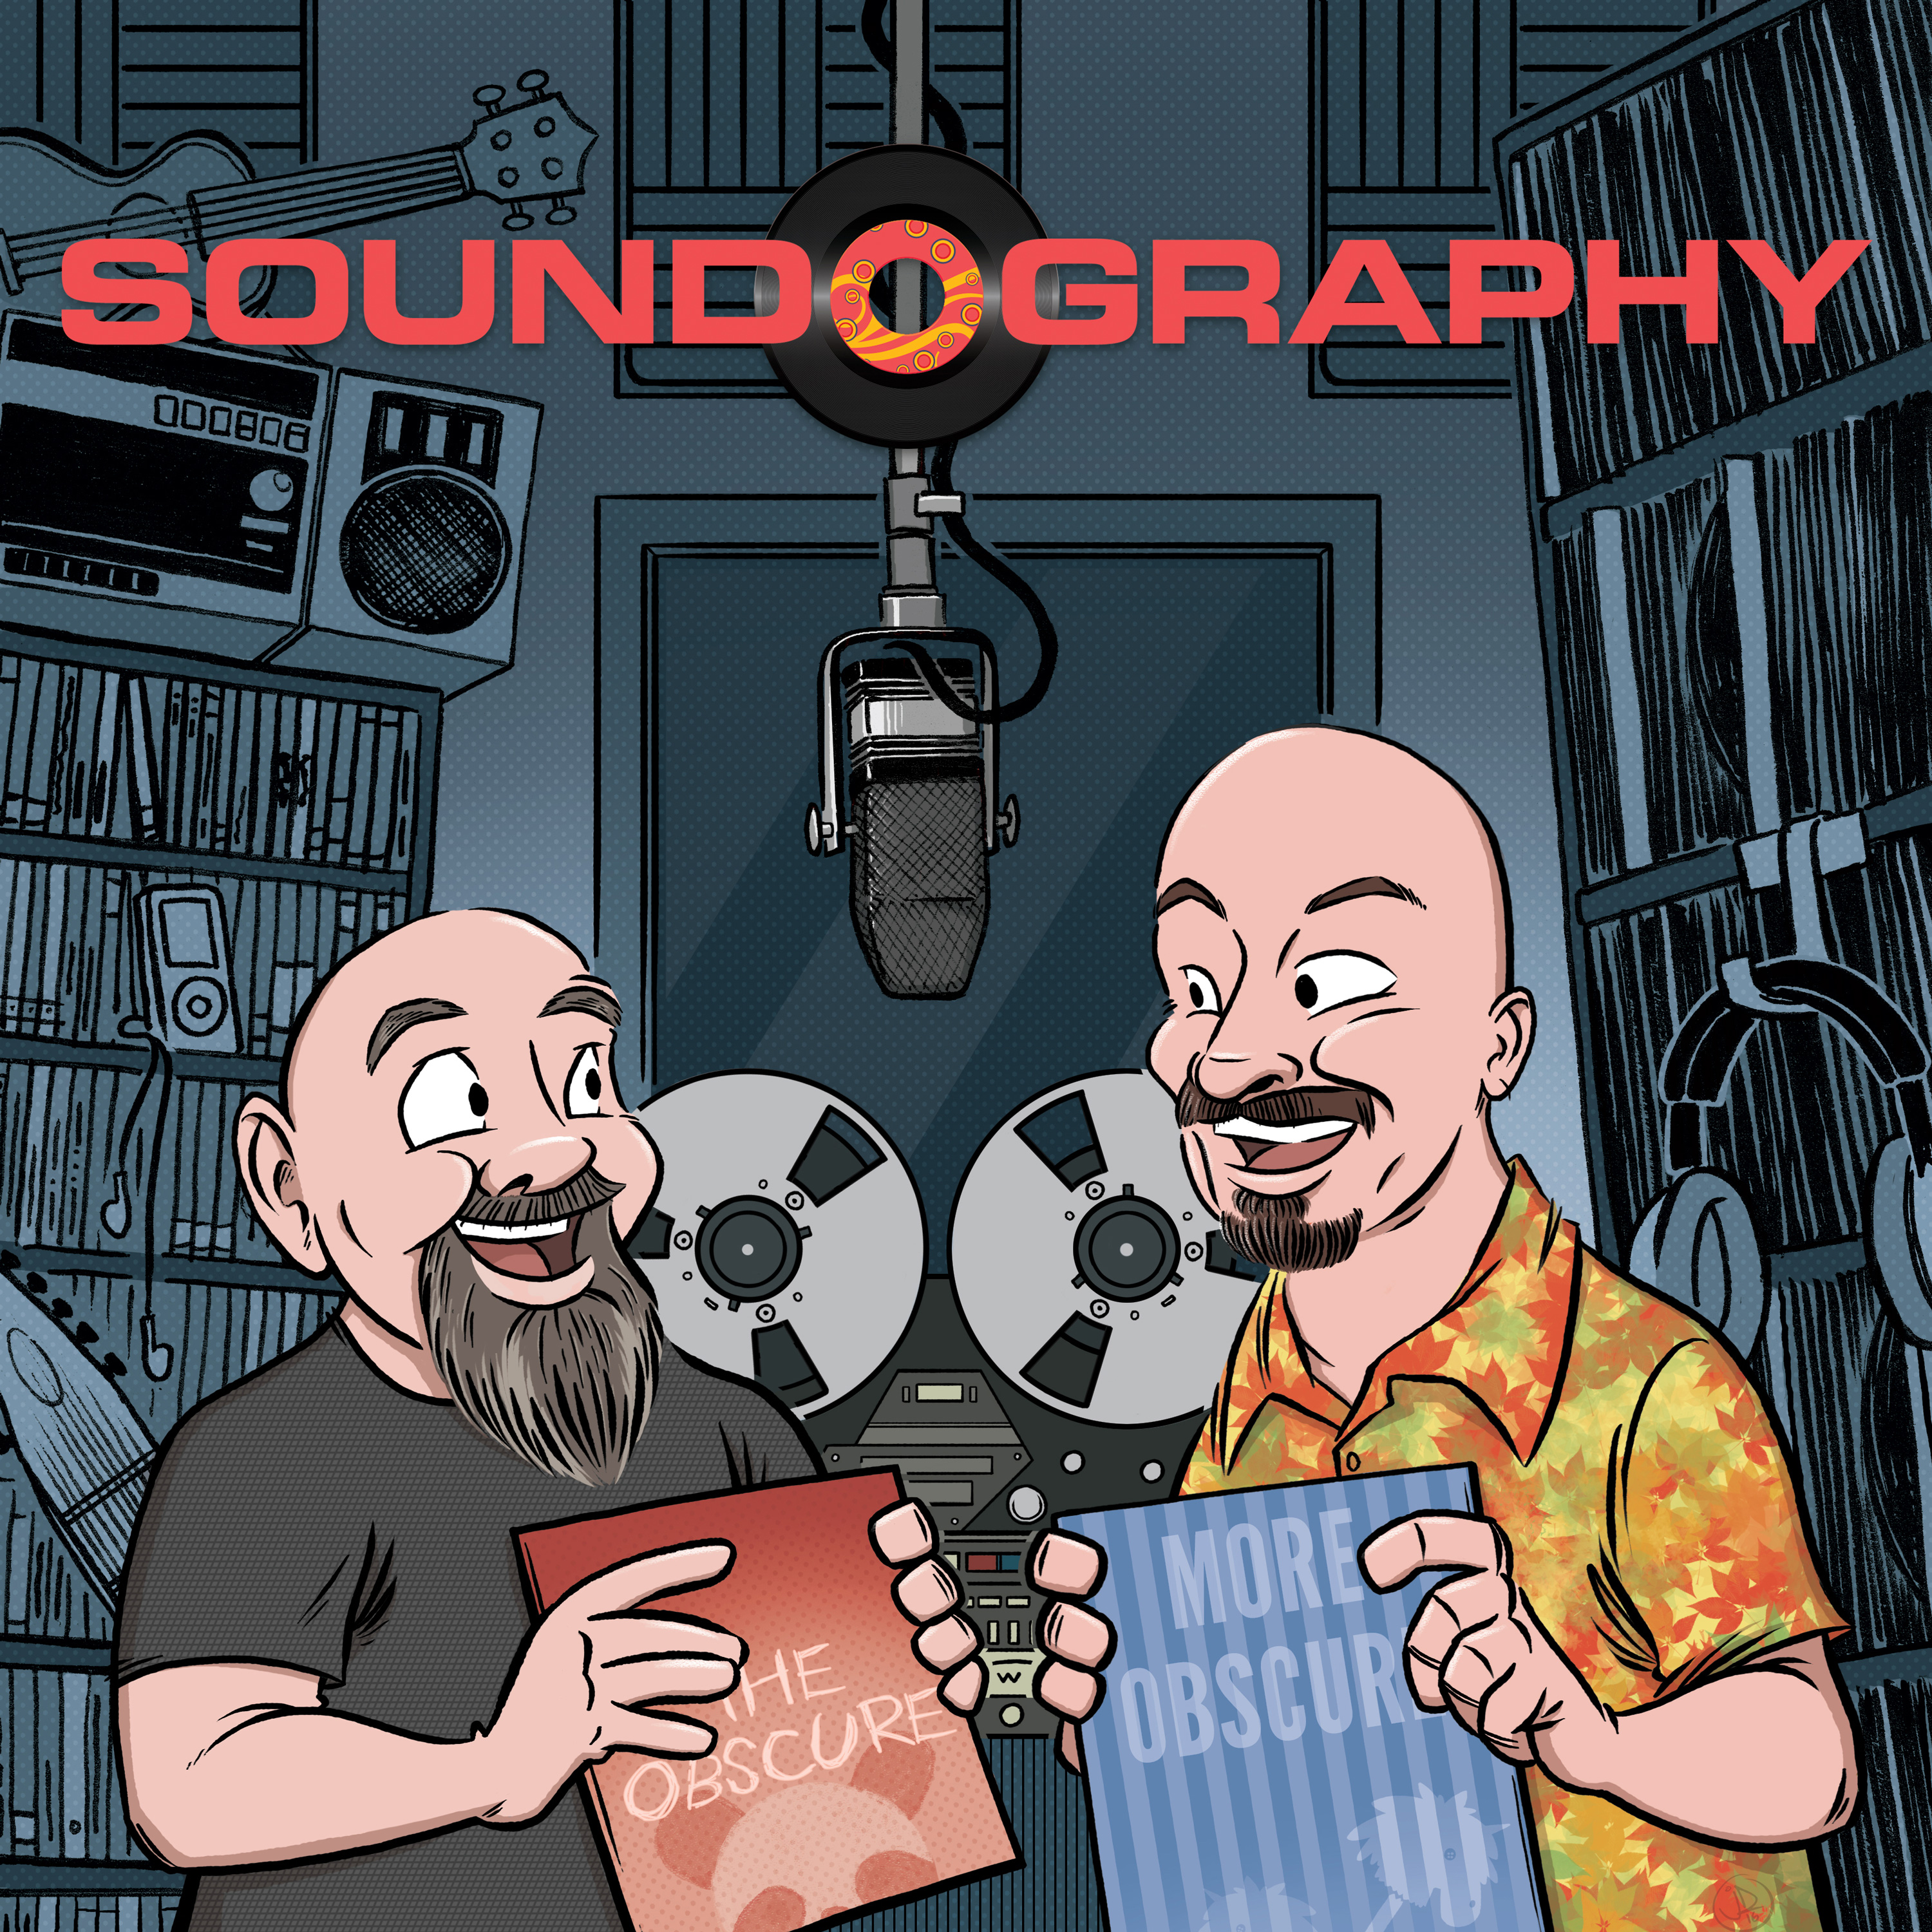 Soundography | A Crash Course in Music, One Band at a Time!